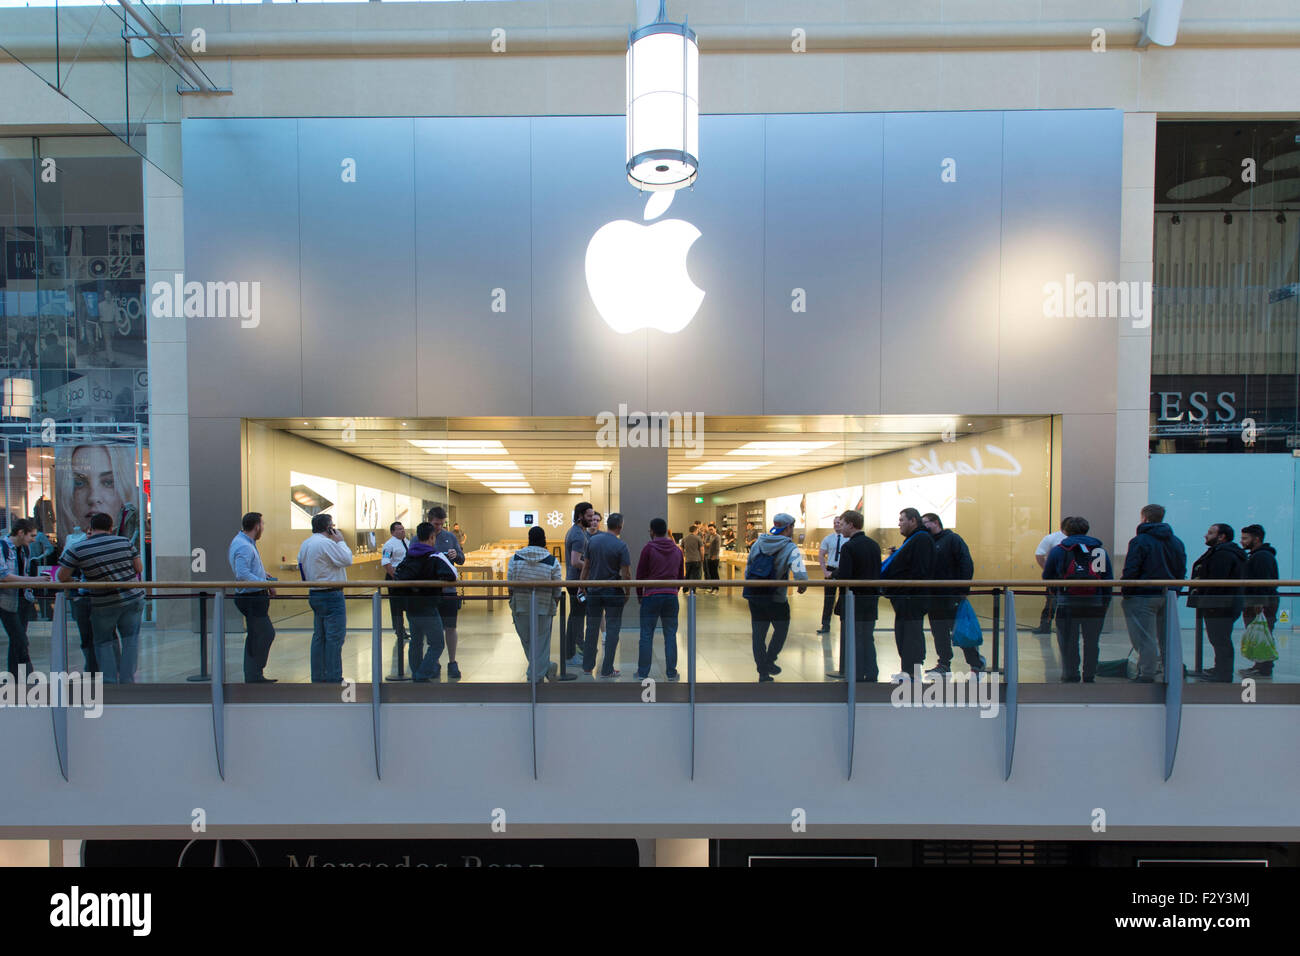 Apple fans queue for the new iPhone the iPhone 6s and iPhone 6s plus at the Apple store in St. David's, Cardiff, Stock Photo